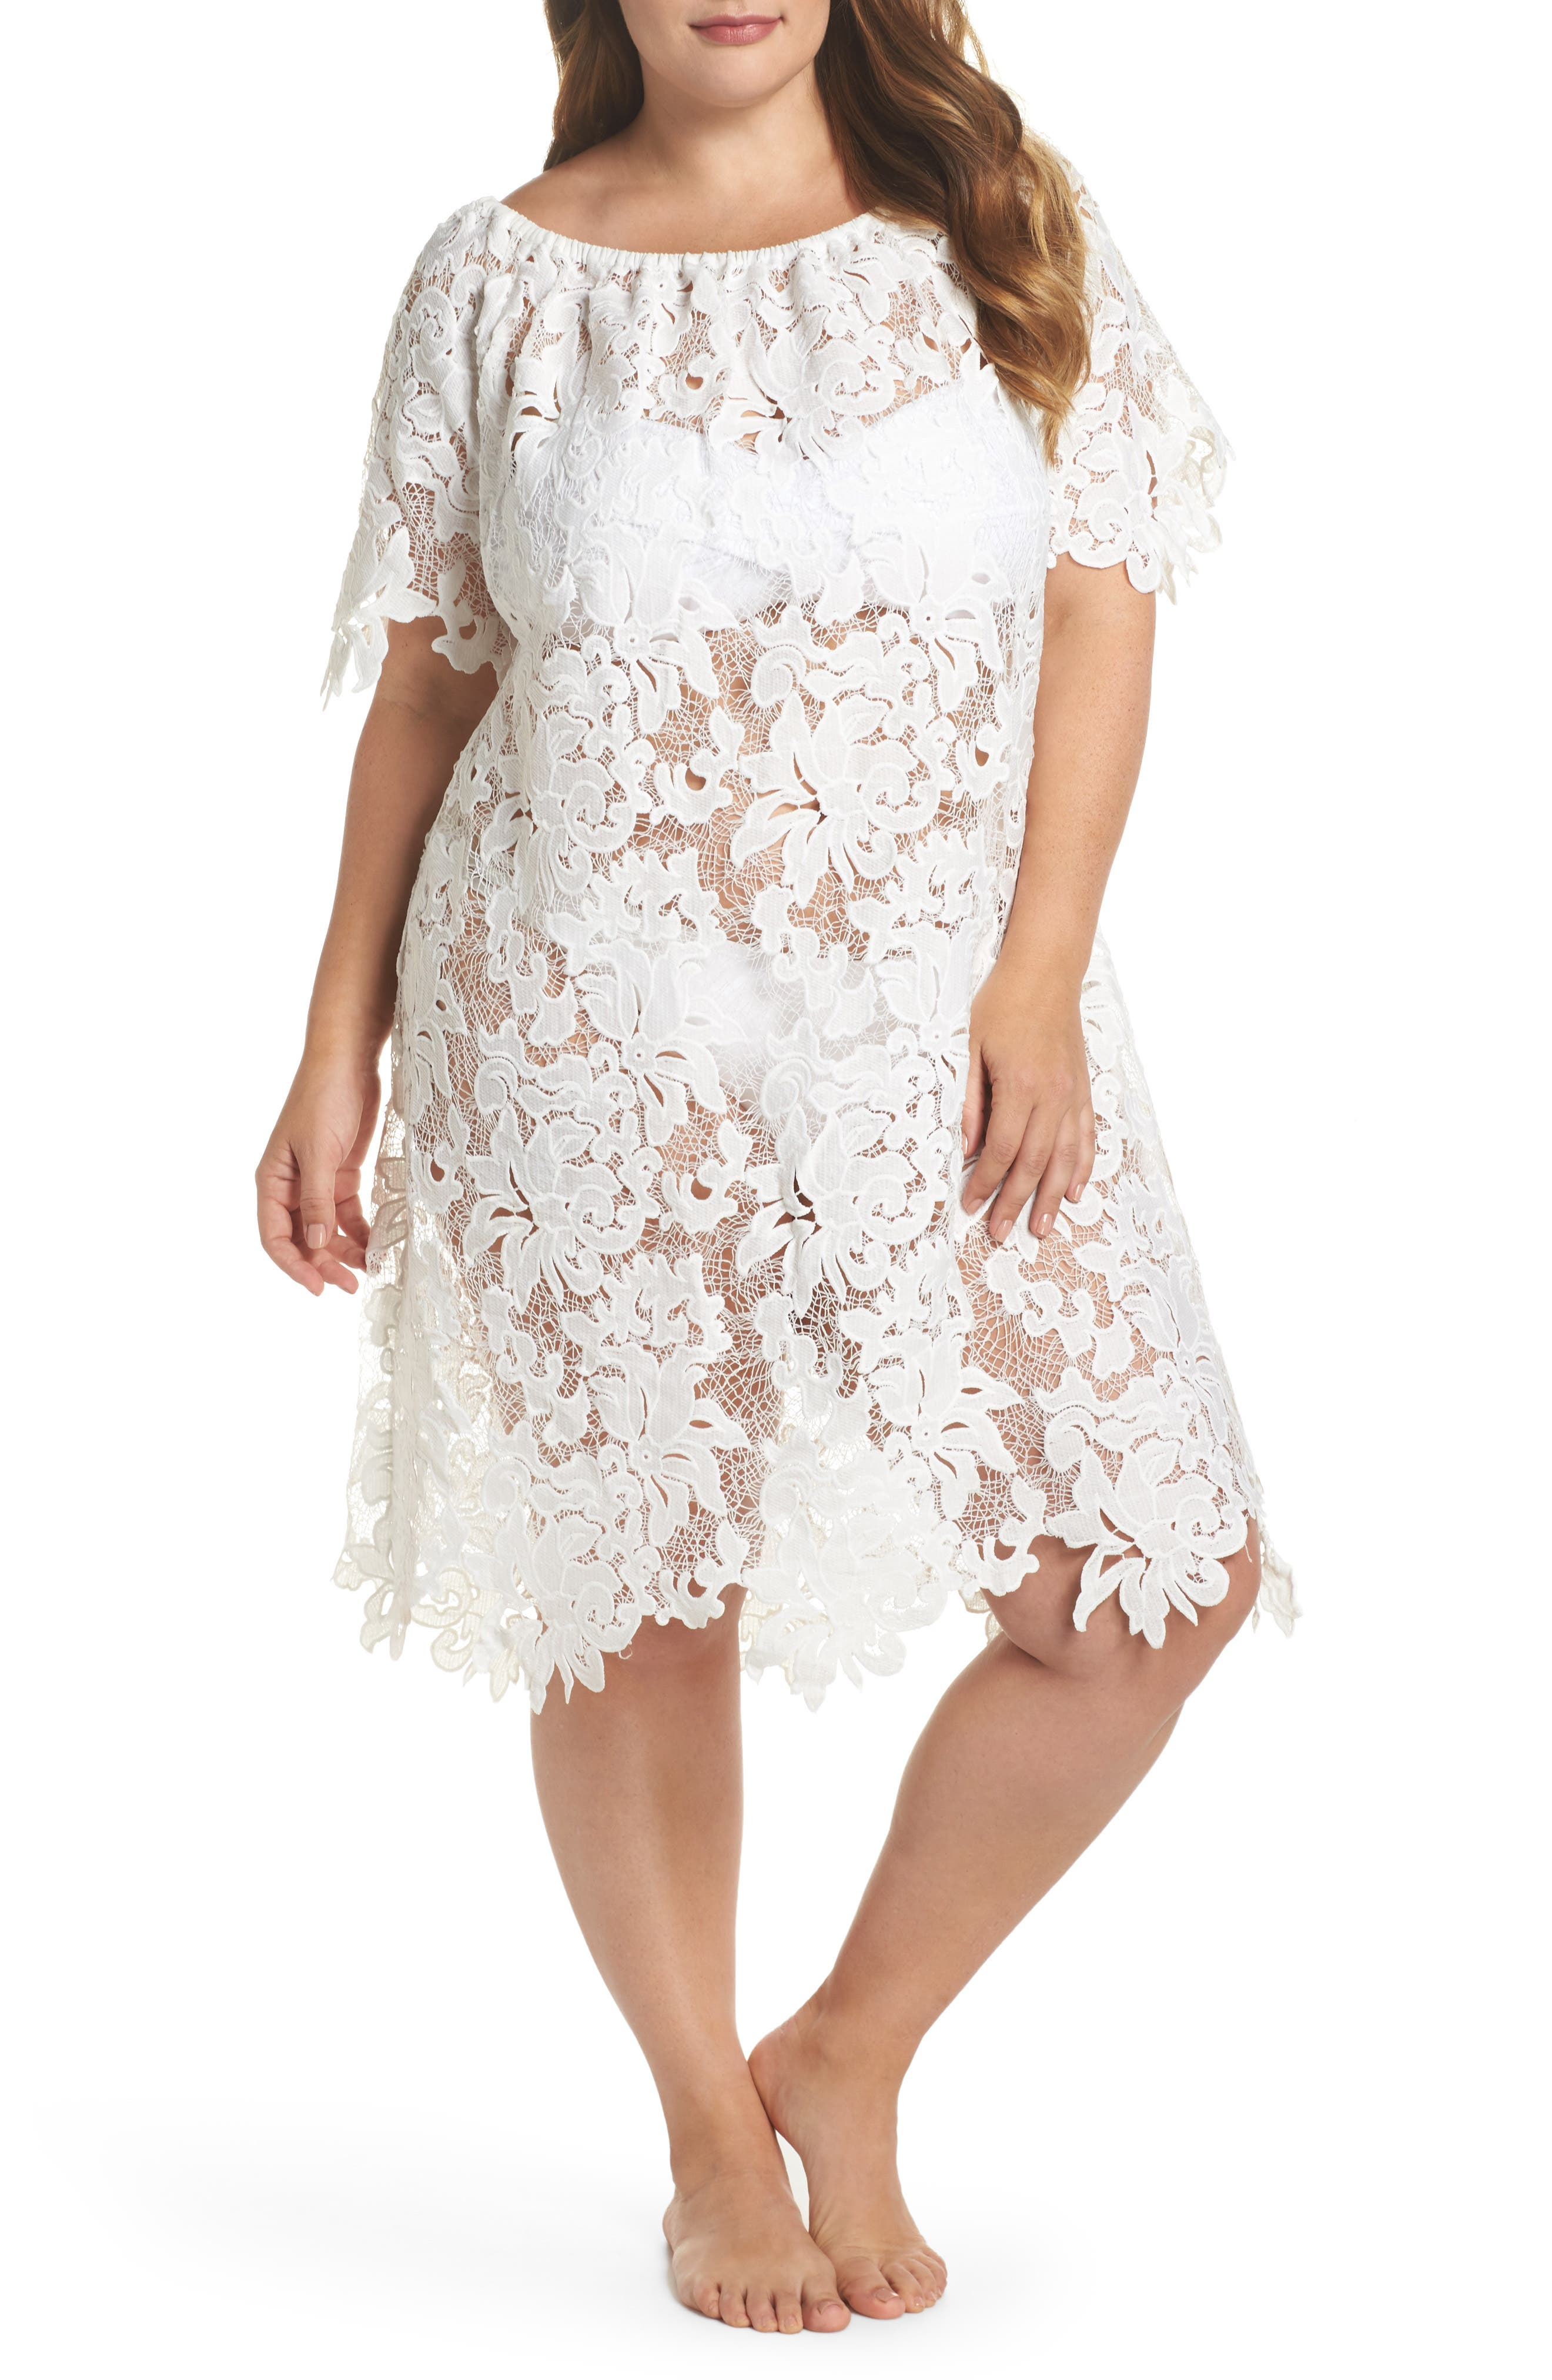 Alternate Image 1 Selected - Muche et Muchette Ode Lace Cover-Up Dress (Plus Size)